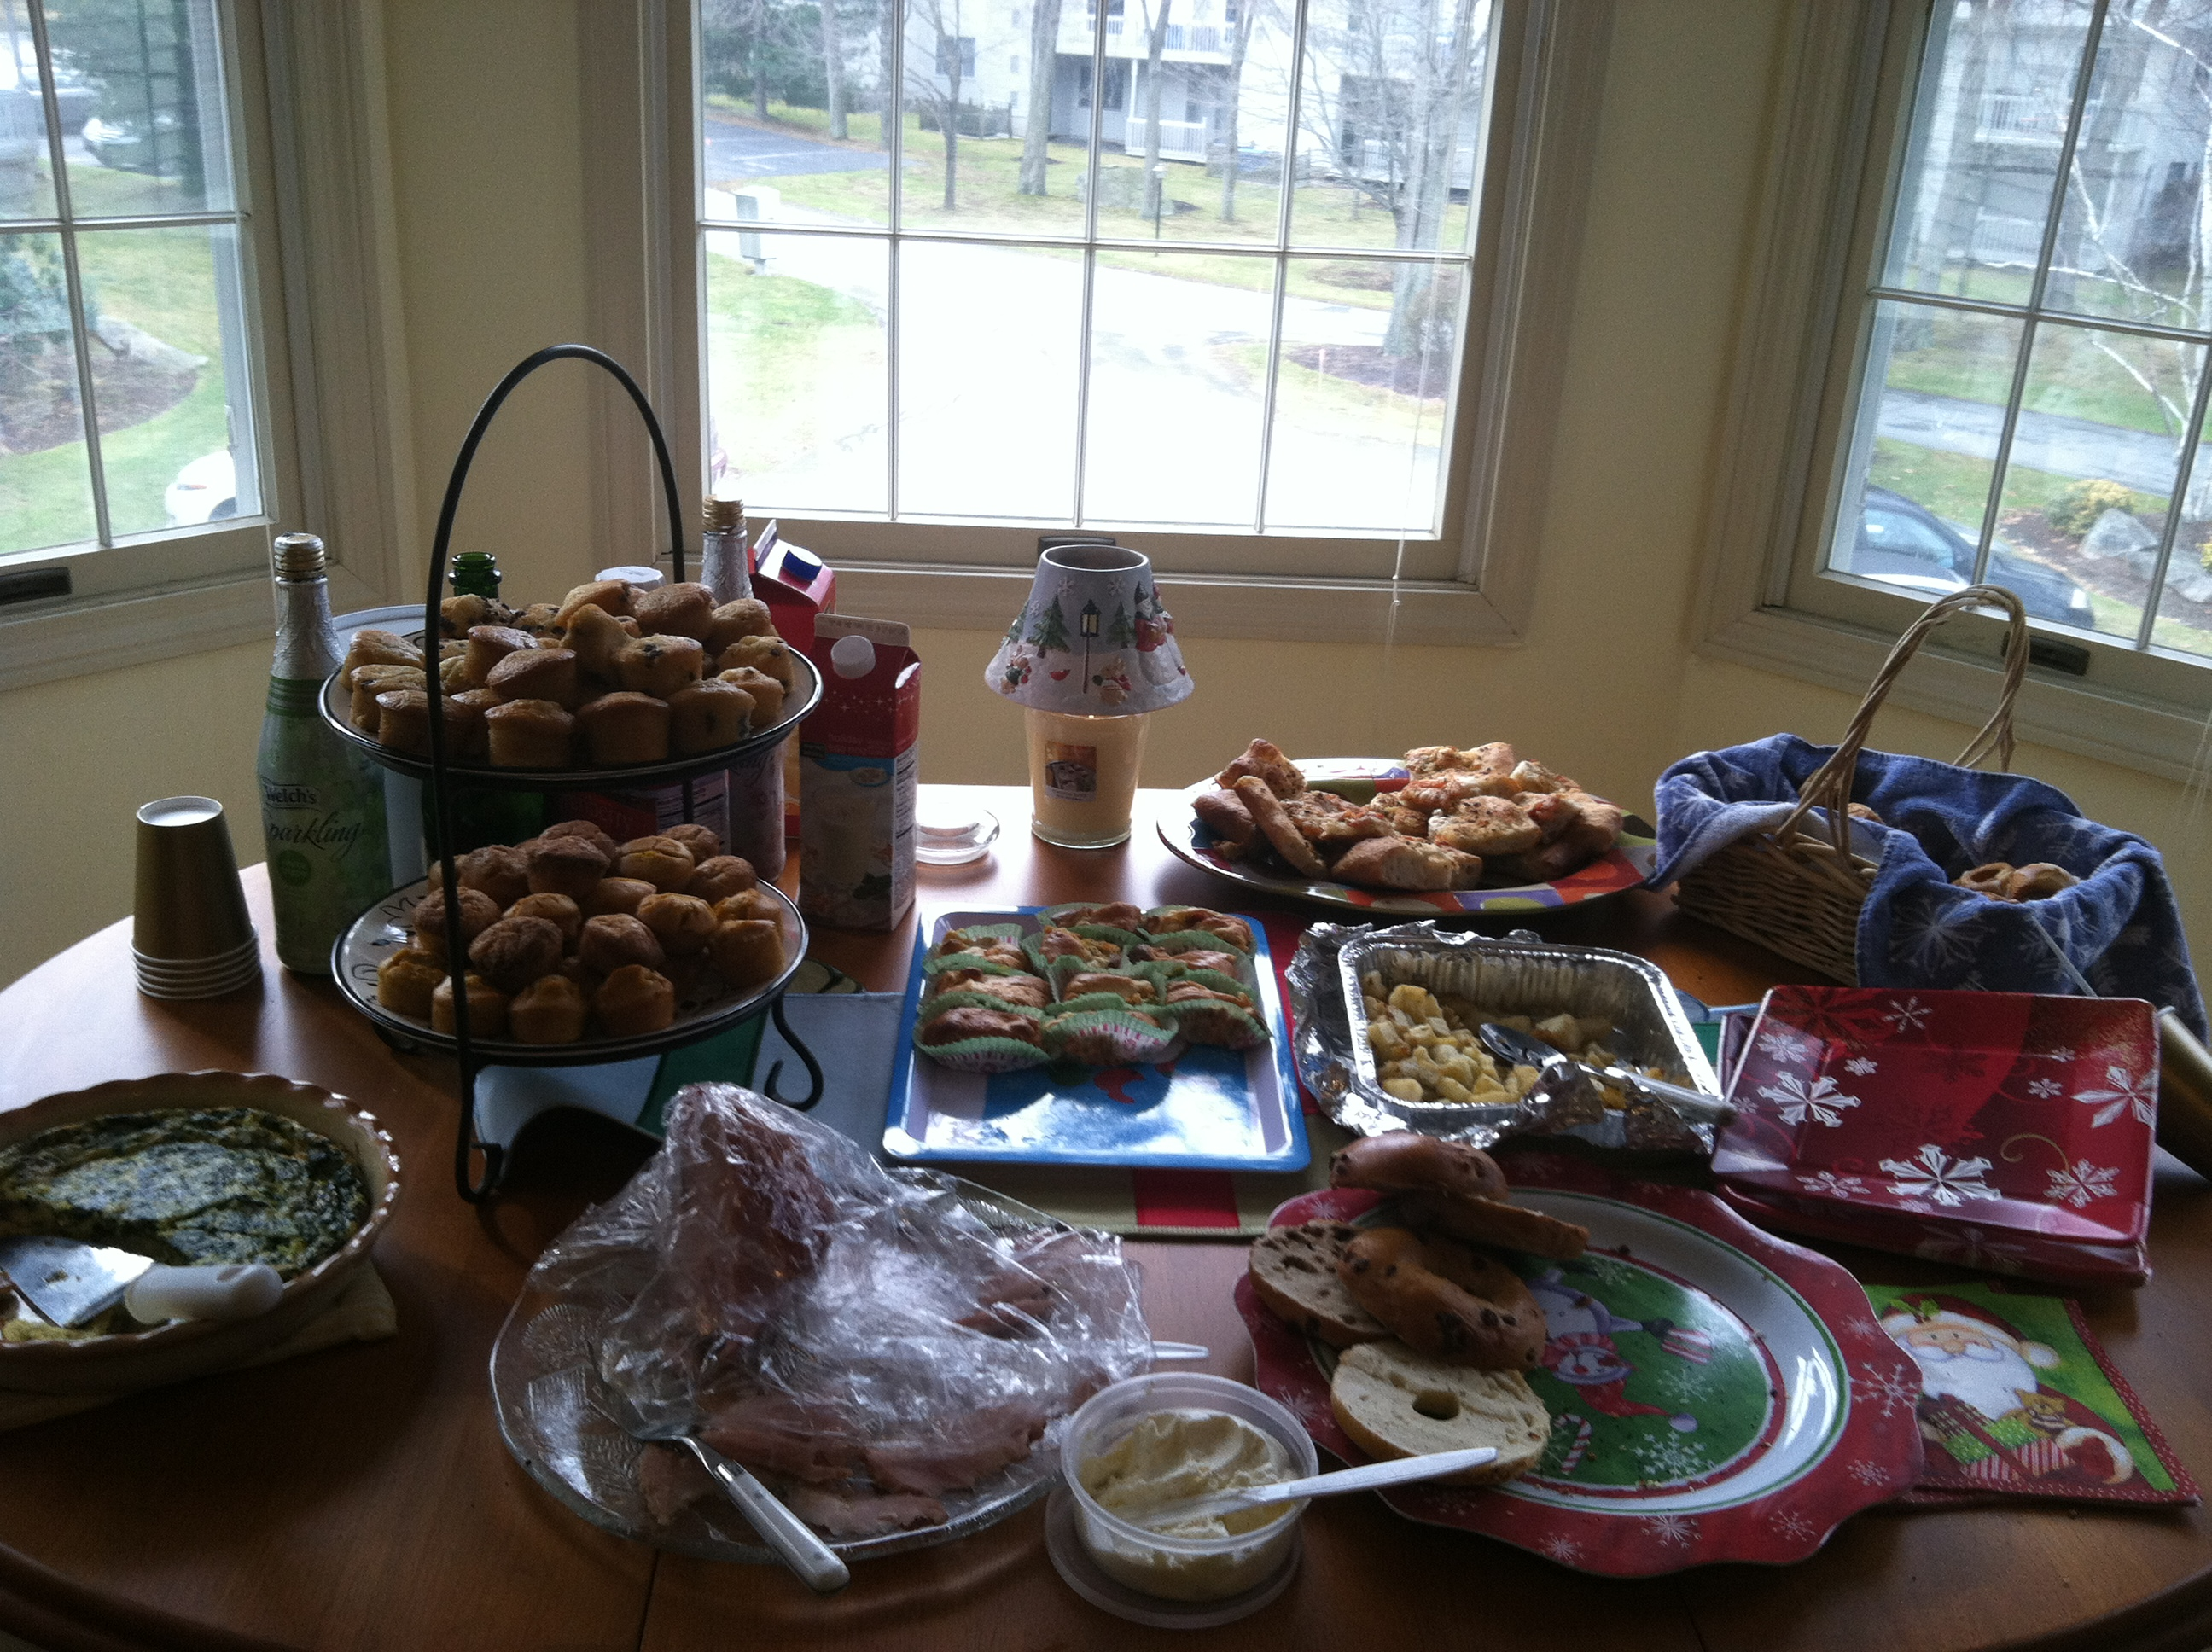 Our delicious assortment of food!